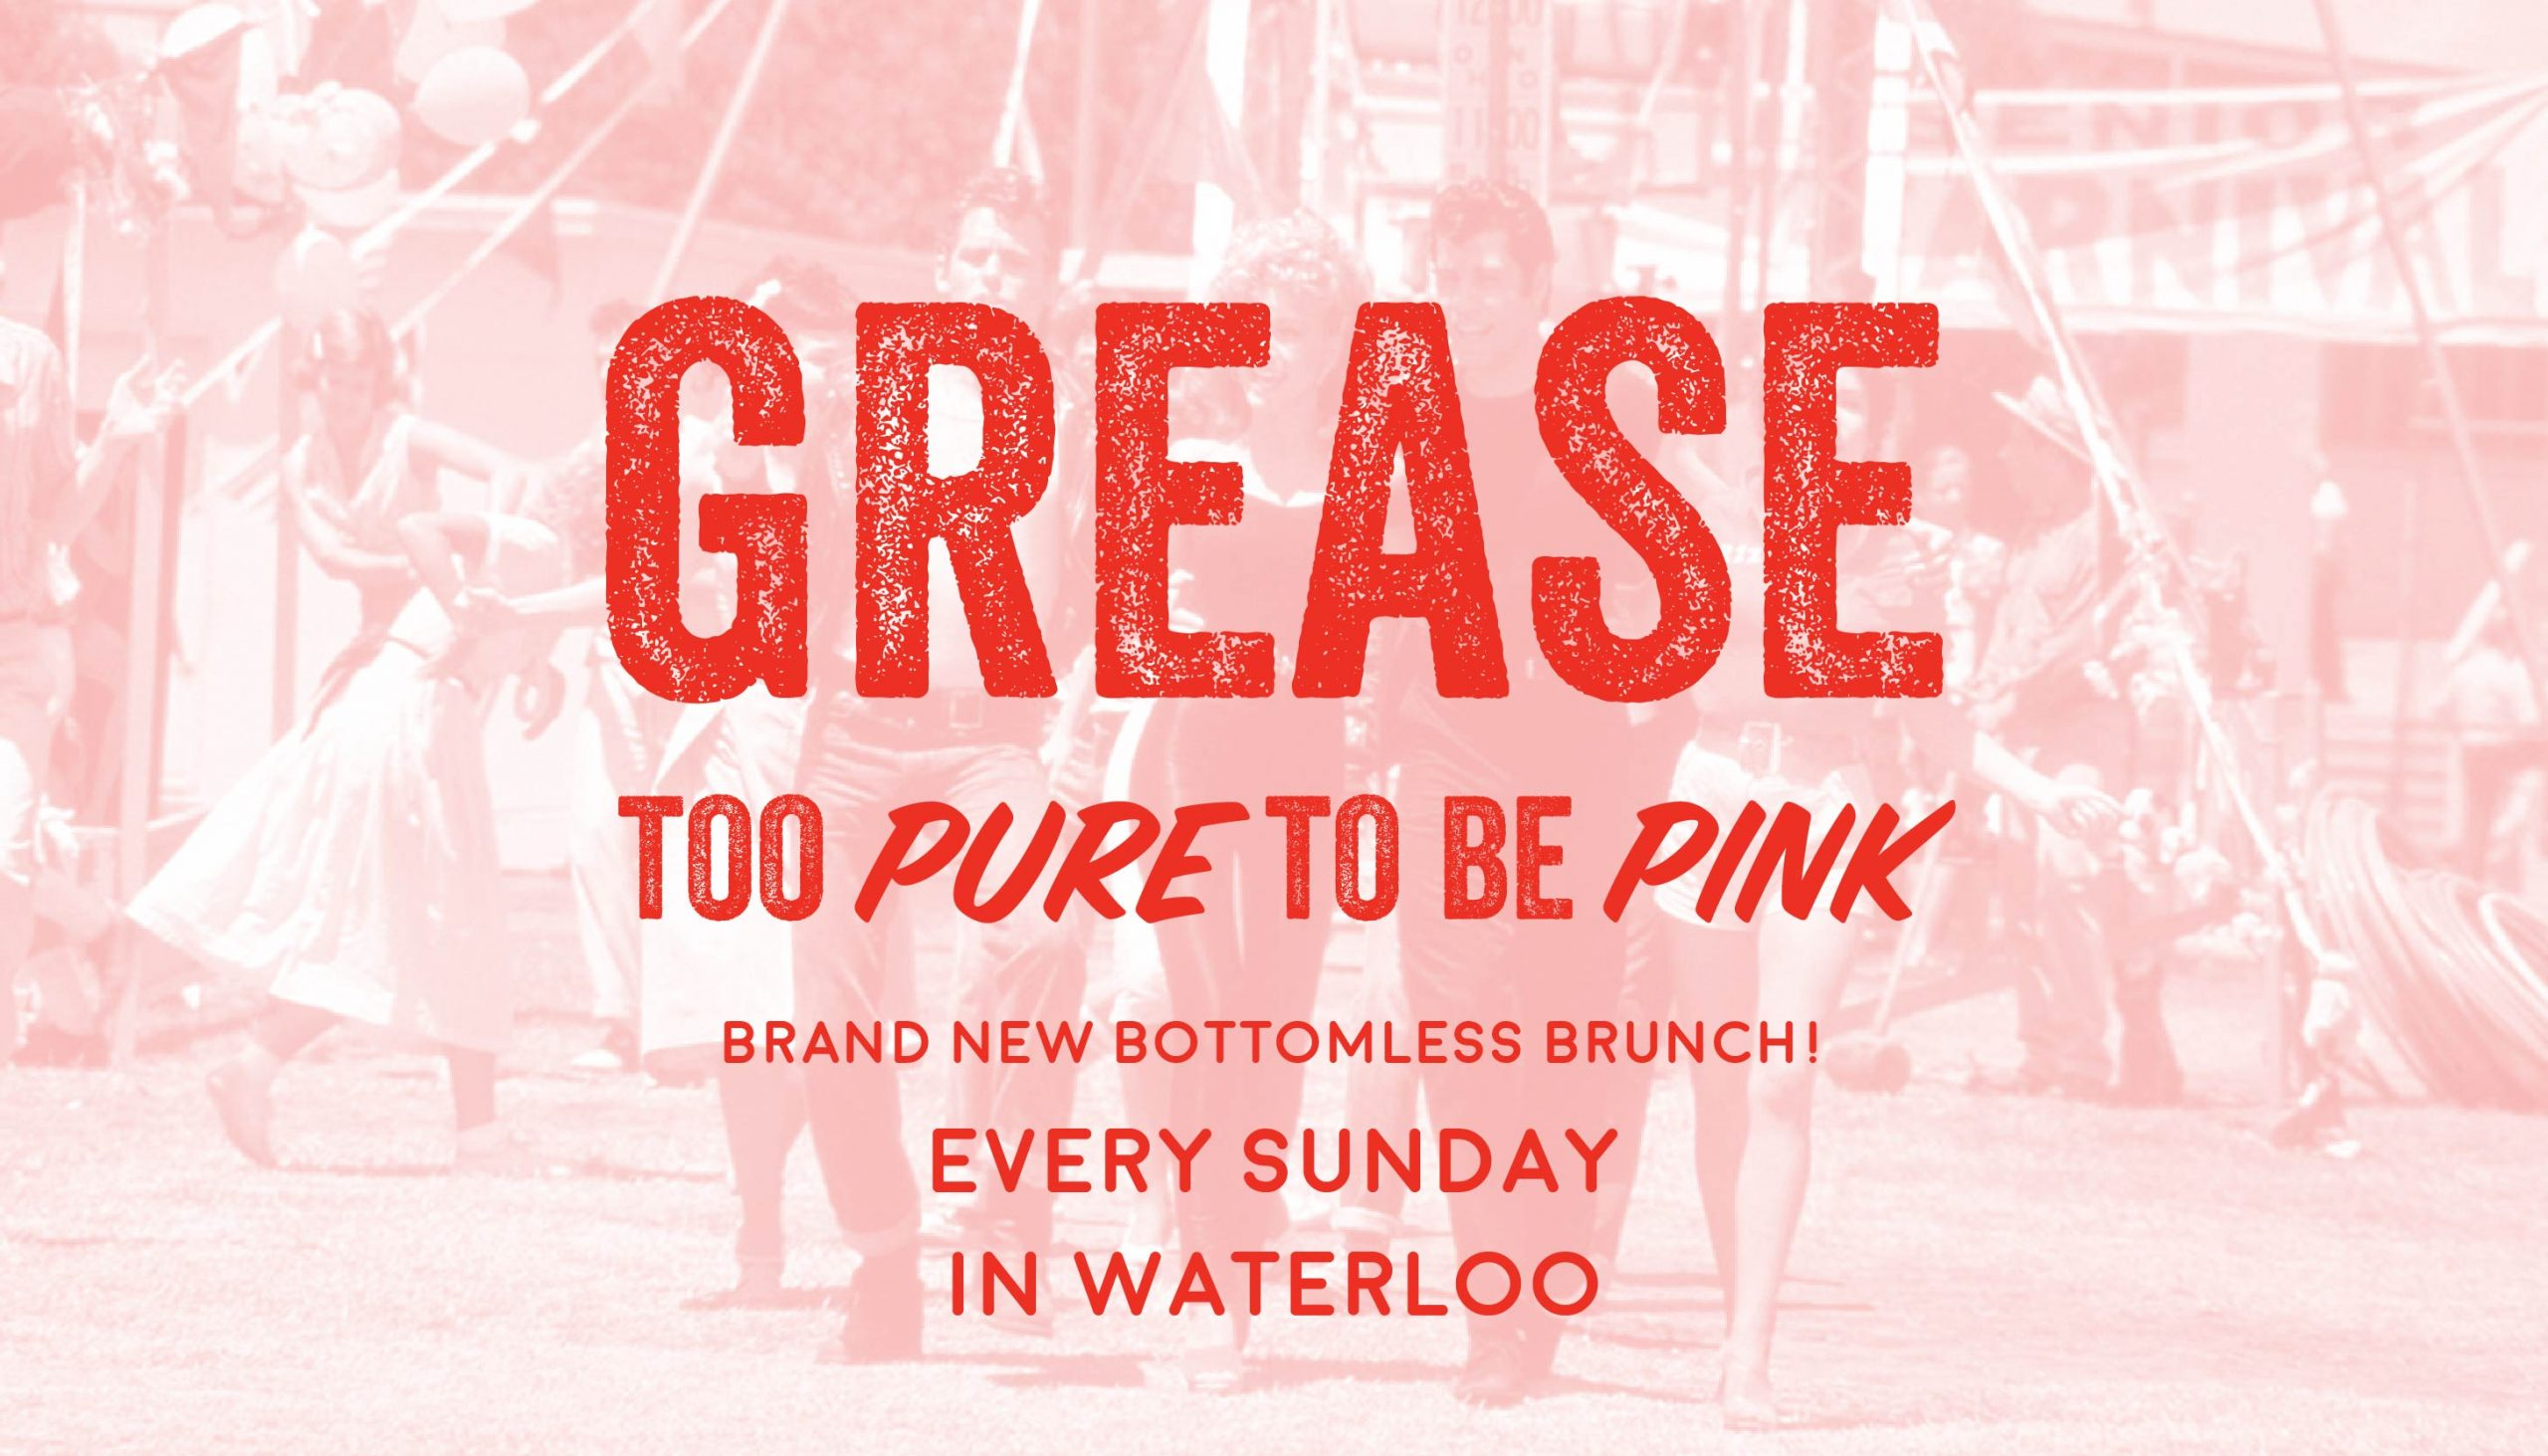 Grease - Too Pure To Be Pink - Bottomless Brunch